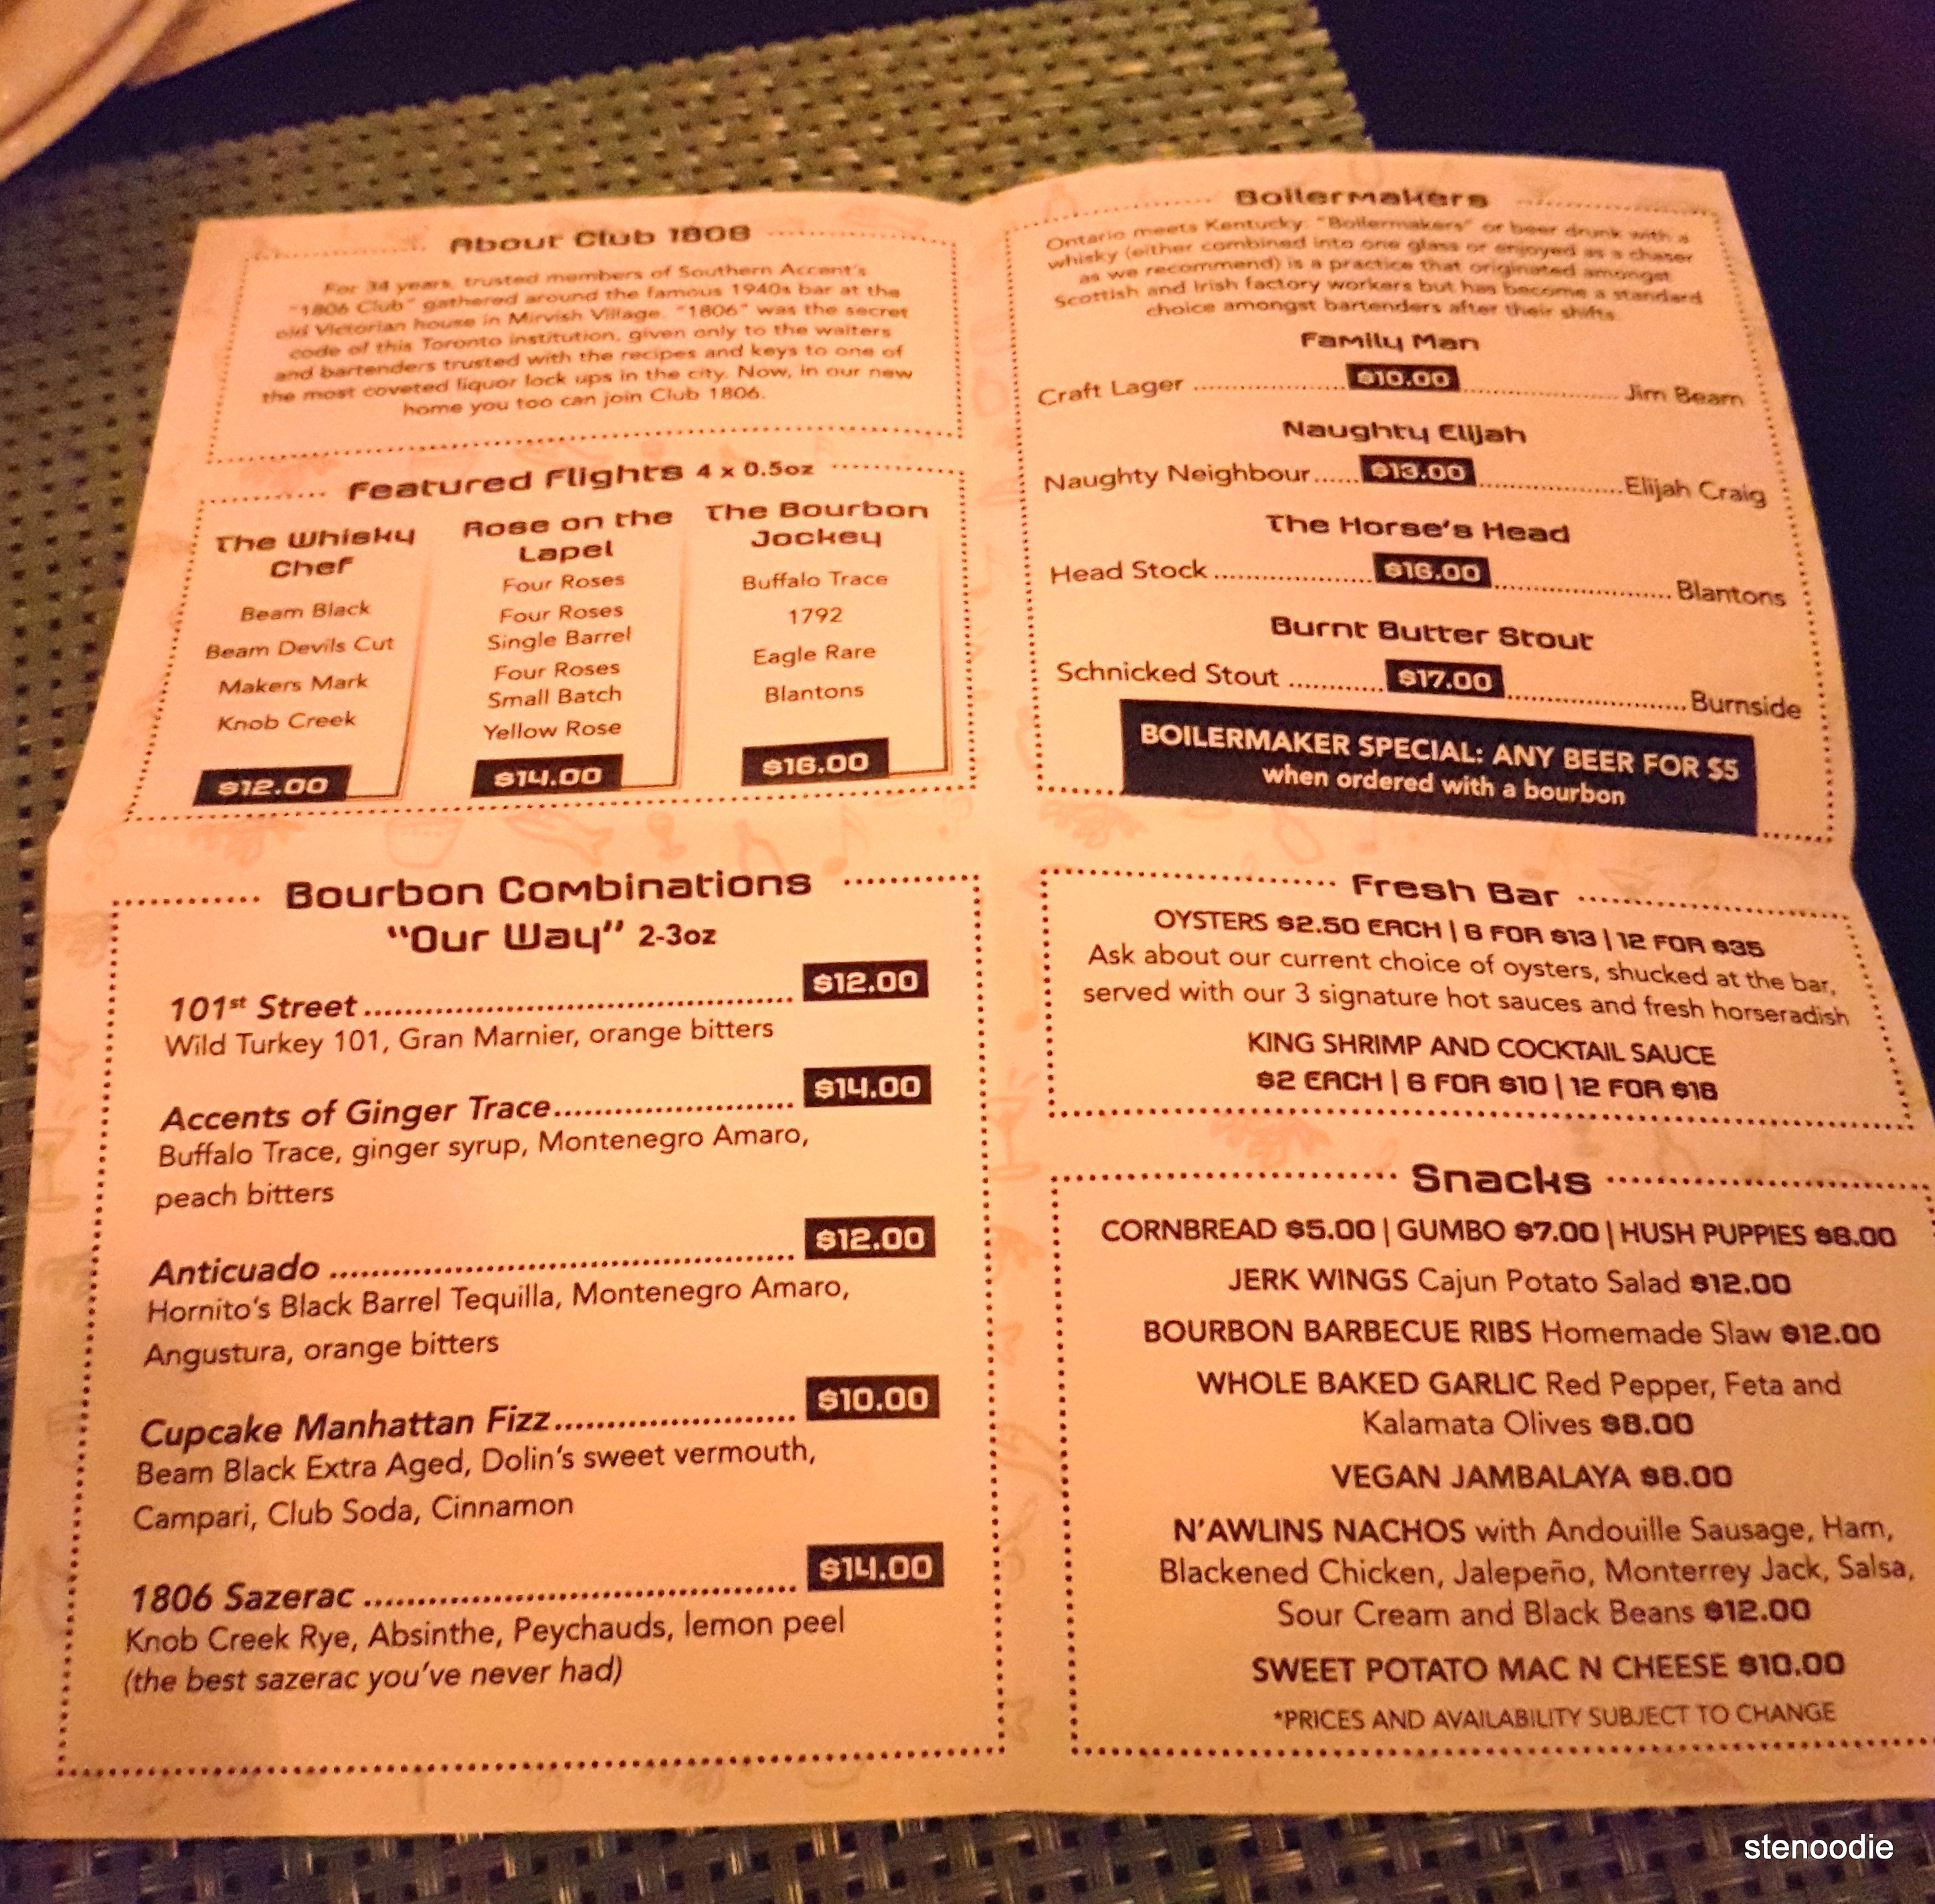 Club 1806 Bourbon Bar menu